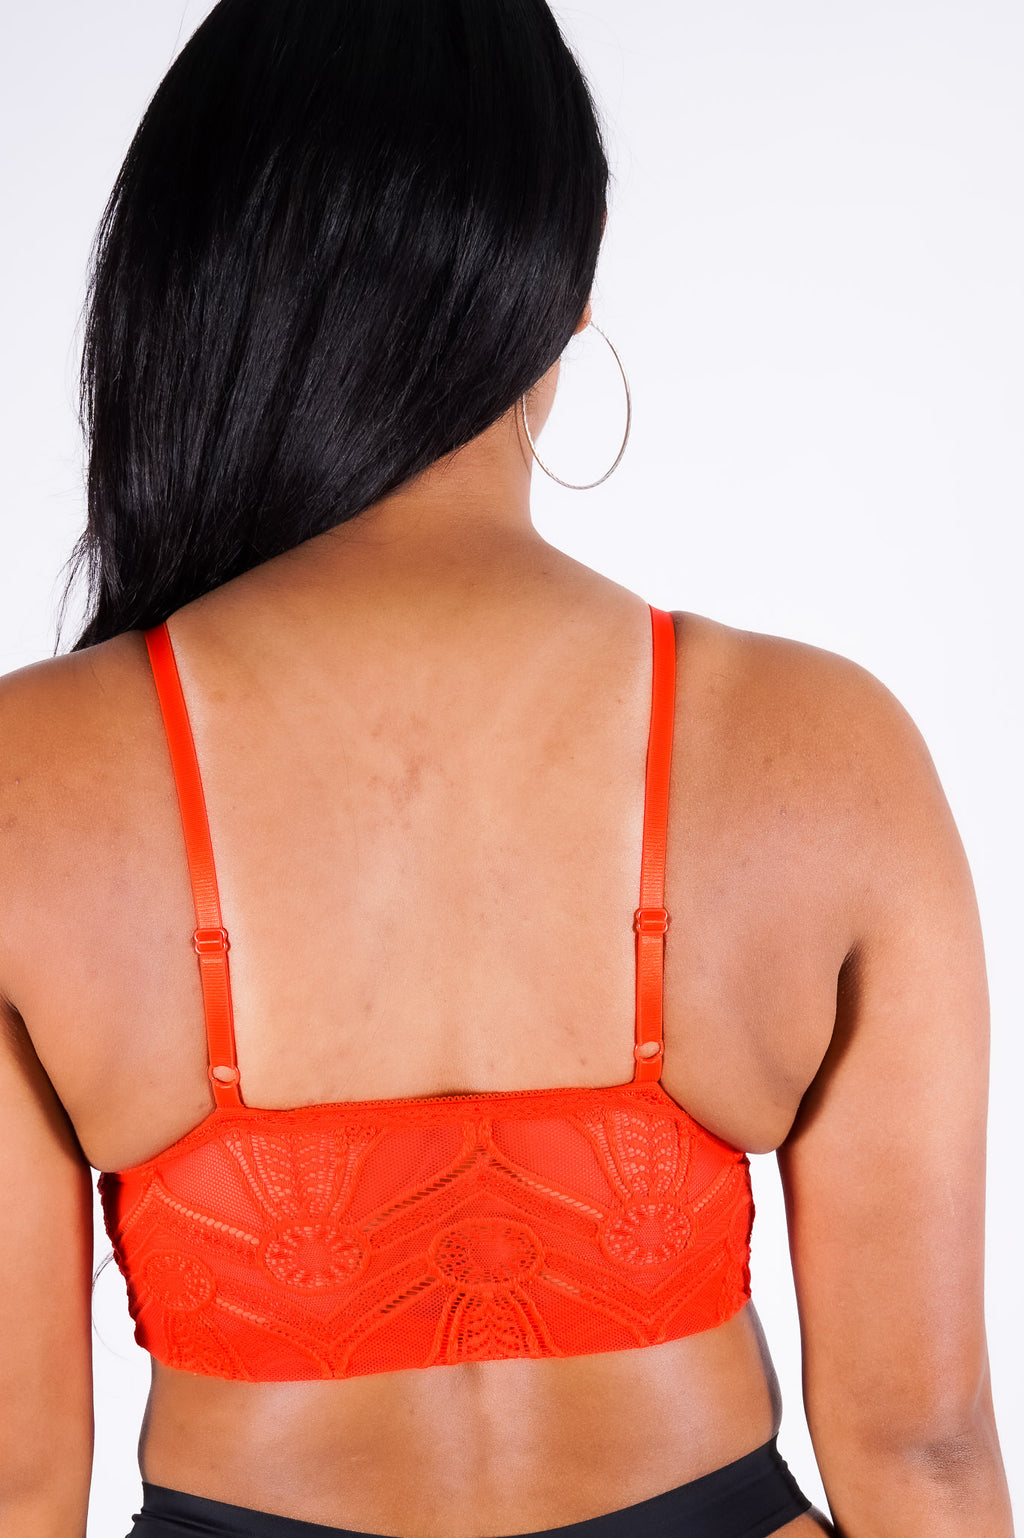 Miesha's lace bralet, red